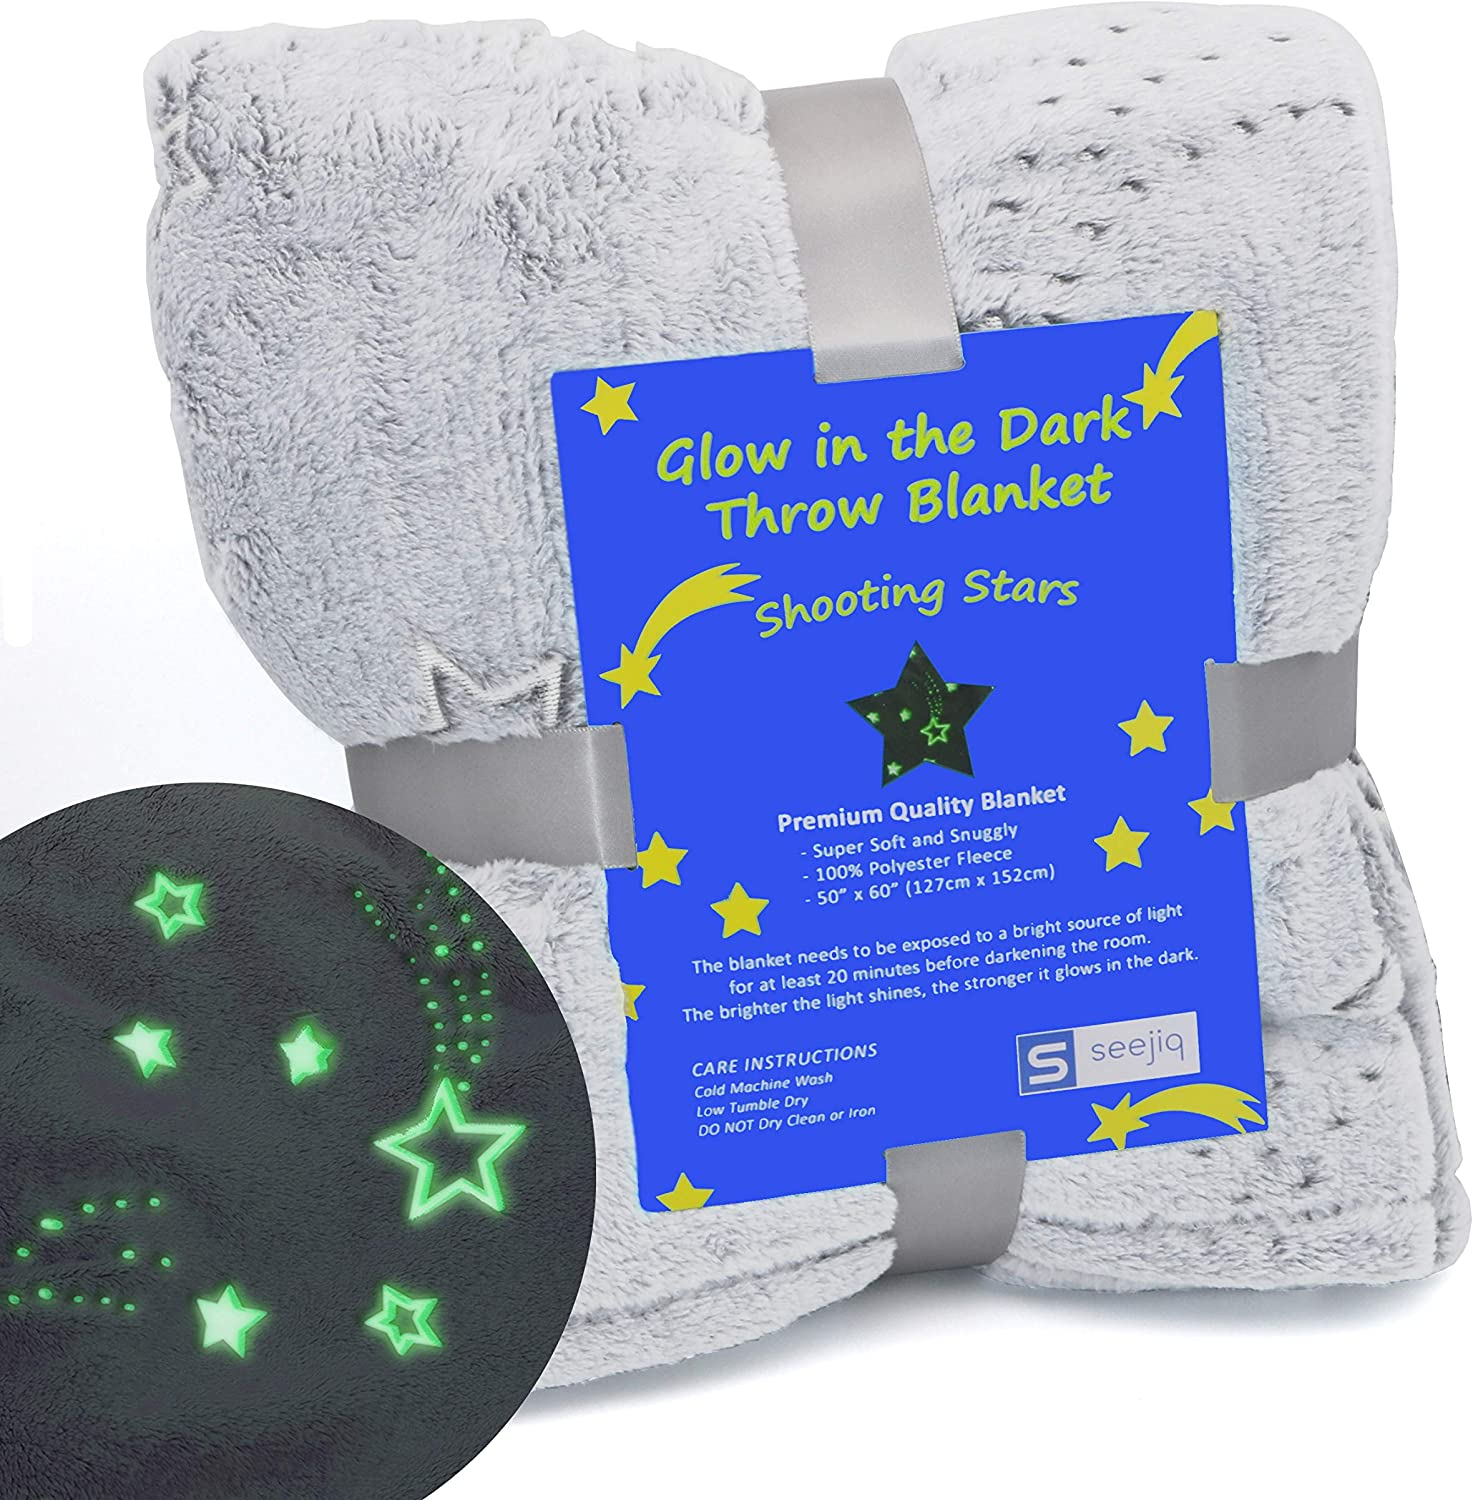 1 year warranty Glow Max 64% OFF in The Dark Blanket 50 Stars Inches X Flee 60 Shooting